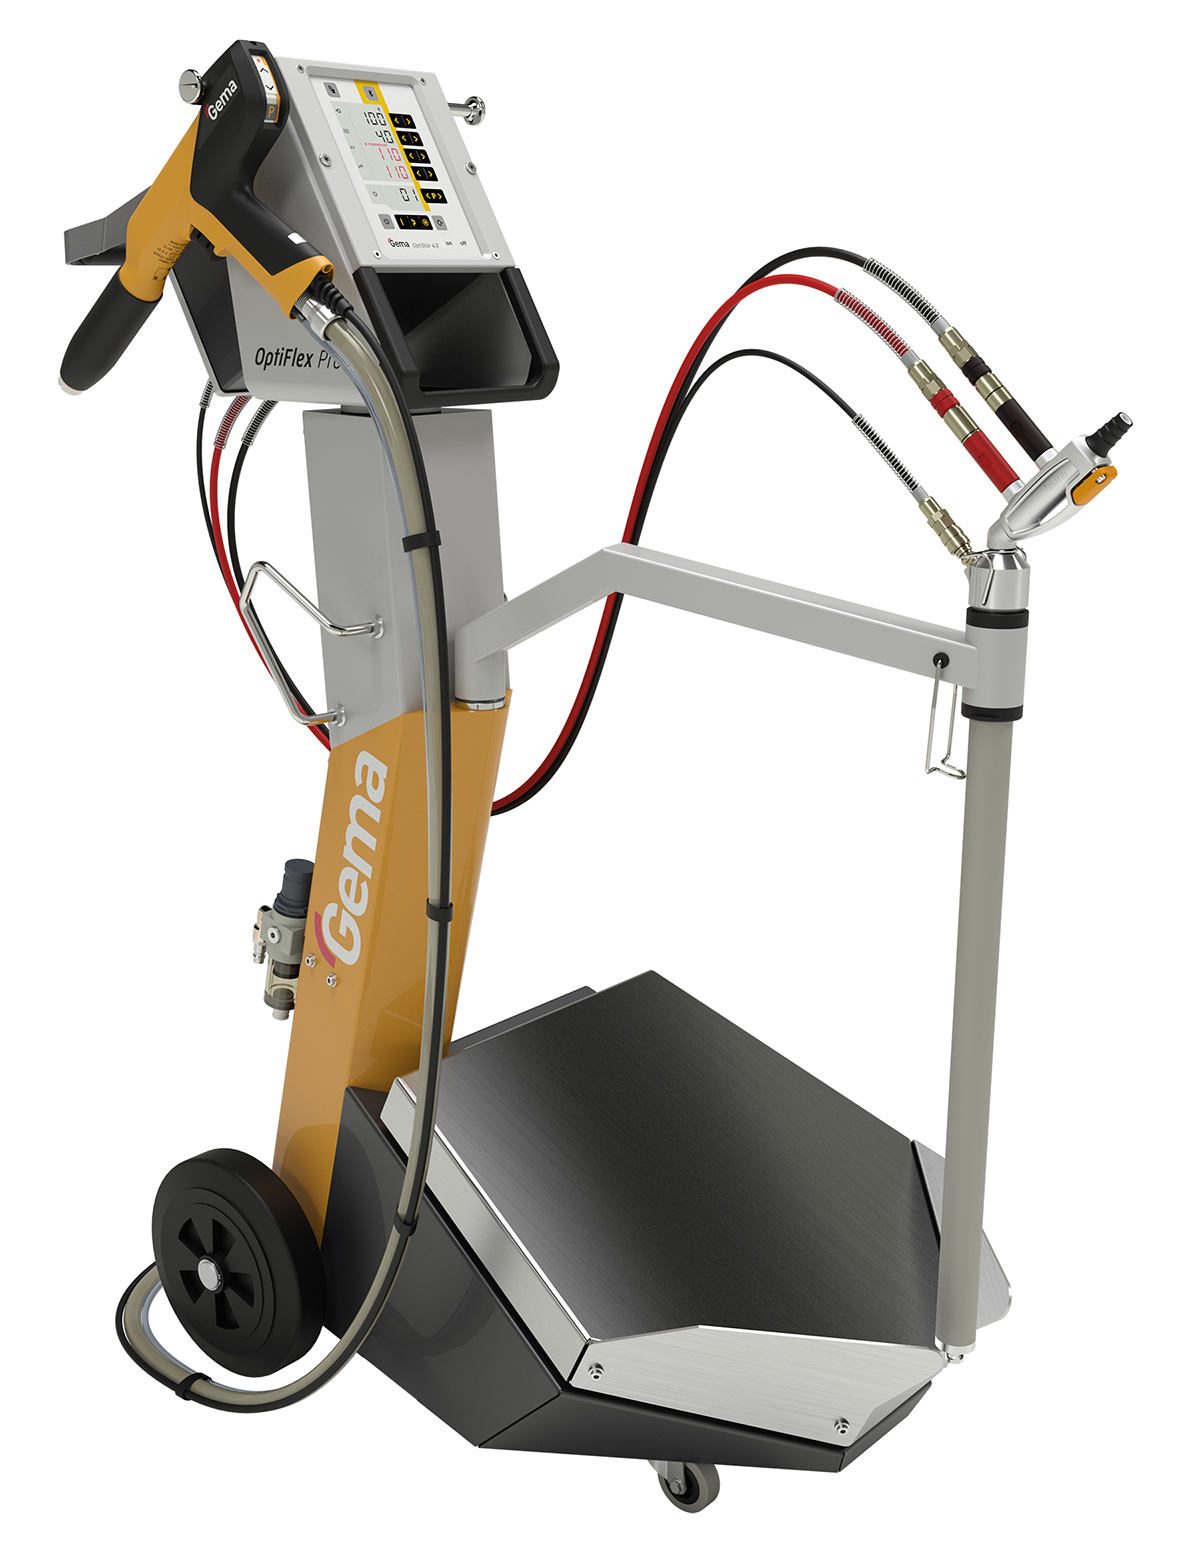 Bringing you the PowerBoost with our new OptiFlex Pro from Gema